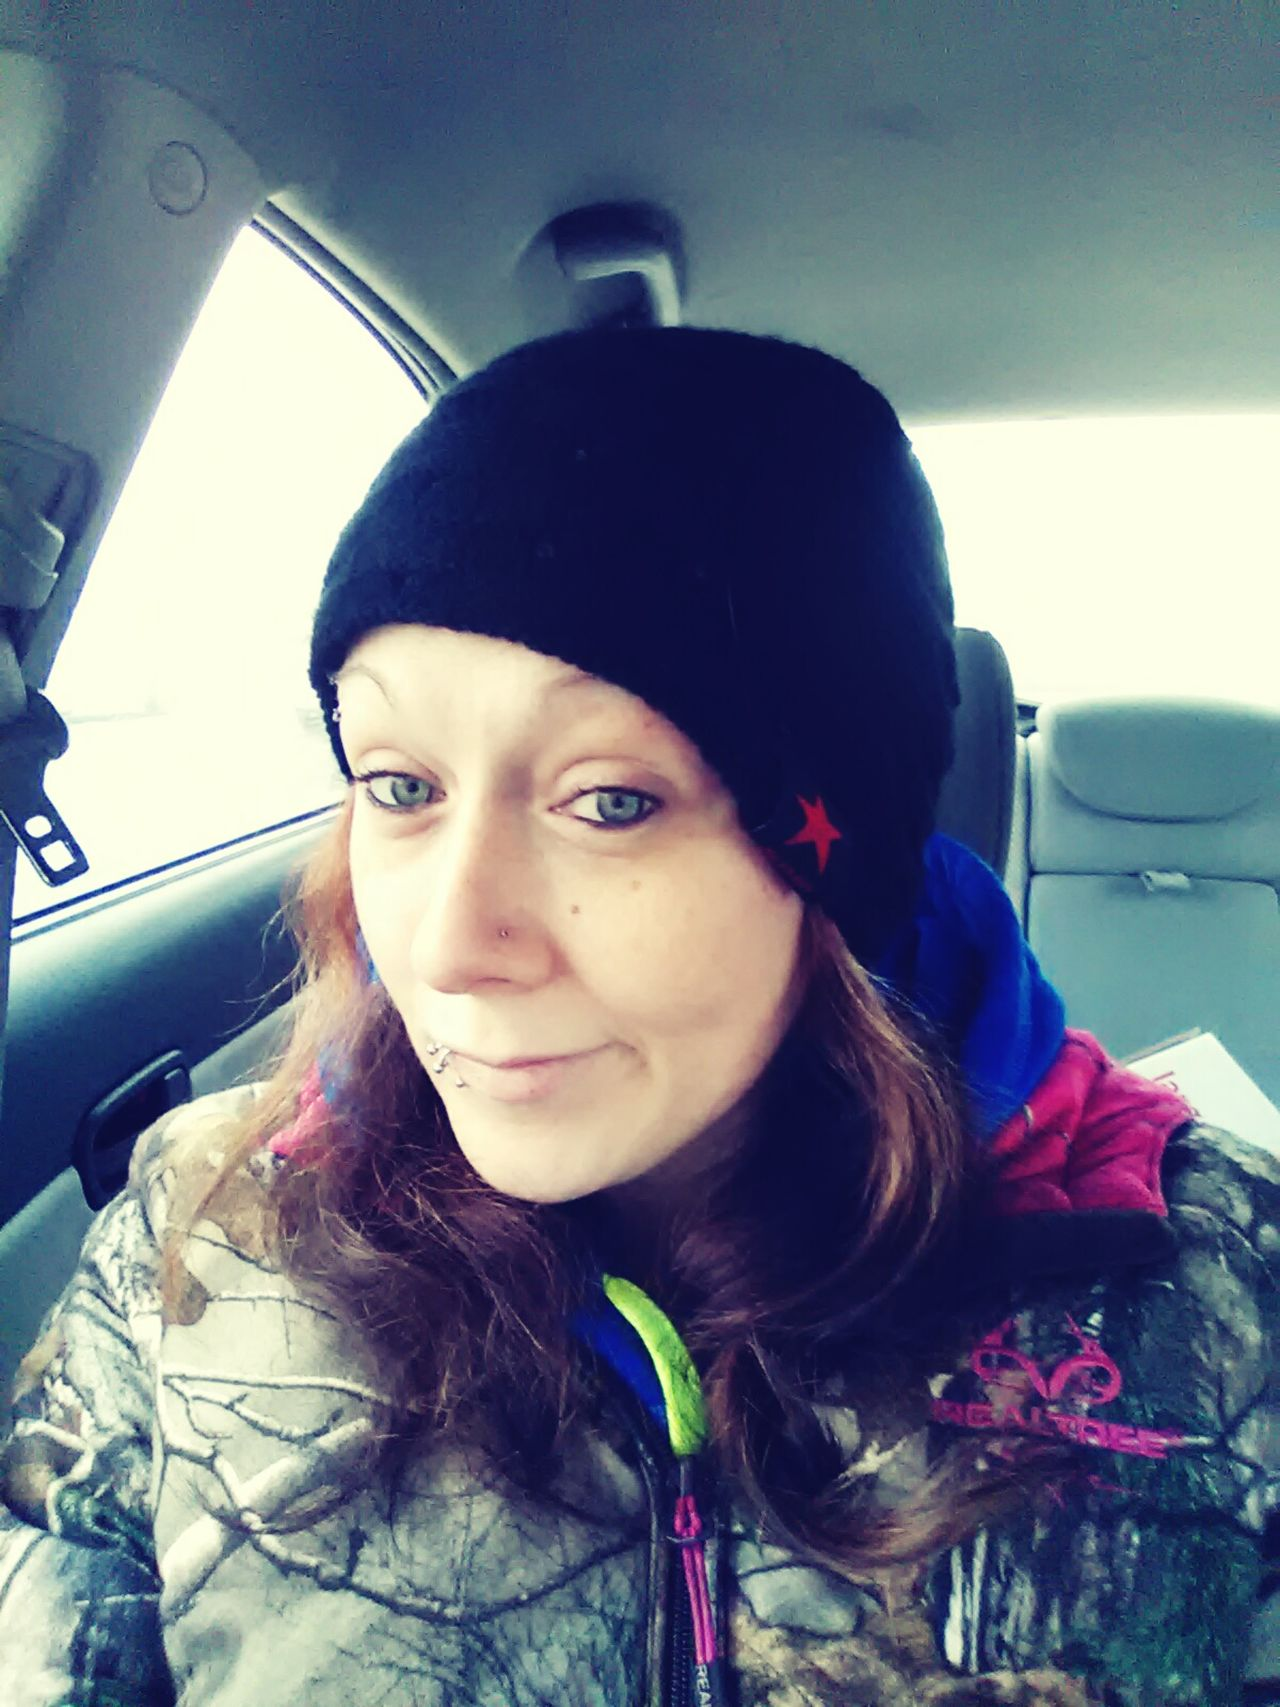 Long Hair Portrait Michigan Winter Michiganliving Looking At Camera Front View Vehicle Interior Young Adult My Photography. ❤ Real Photography 2016♡ Cold Outside ❄⛄  My Point Of View Hello World ✌ Michigan Up North Real People, Real Lives Beauty Smile❤ Selfie✌ Check This Out 😊 Blue Eyes Crazy Blue Eyes Thats Me ♥ Selfie Portrait Thats Me!